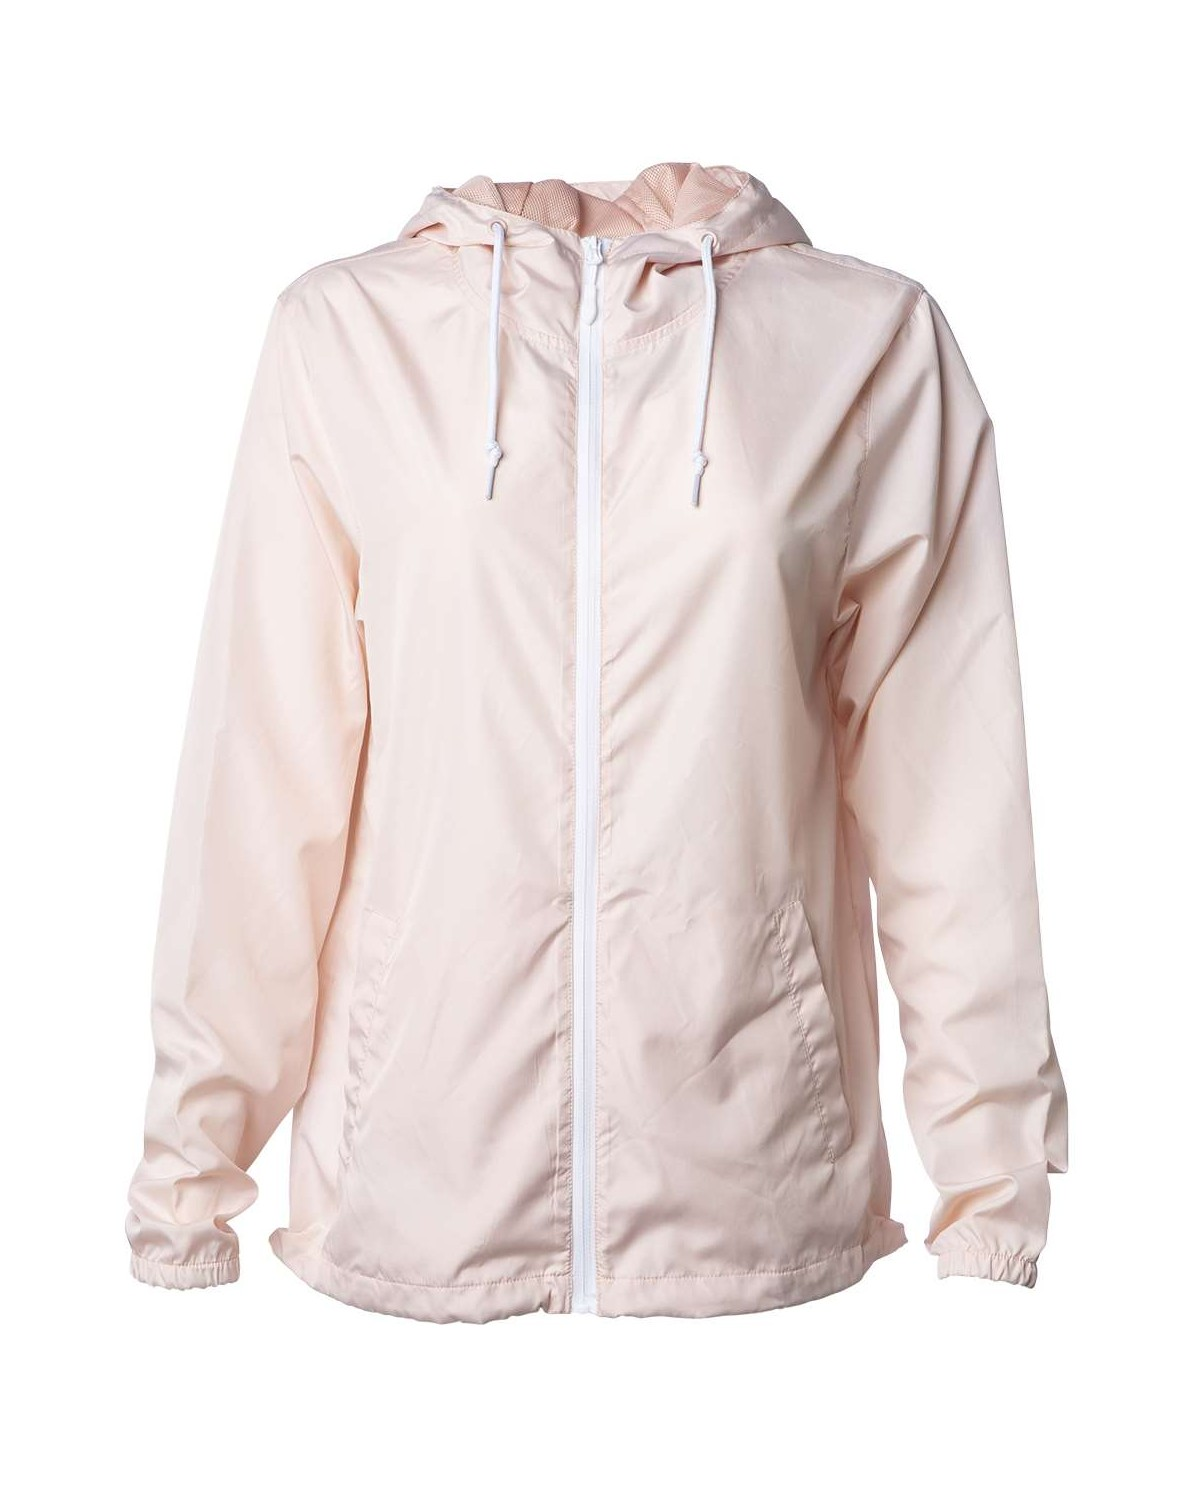 EXP54LWZ Independent Trading Company Blush/ White Zipper